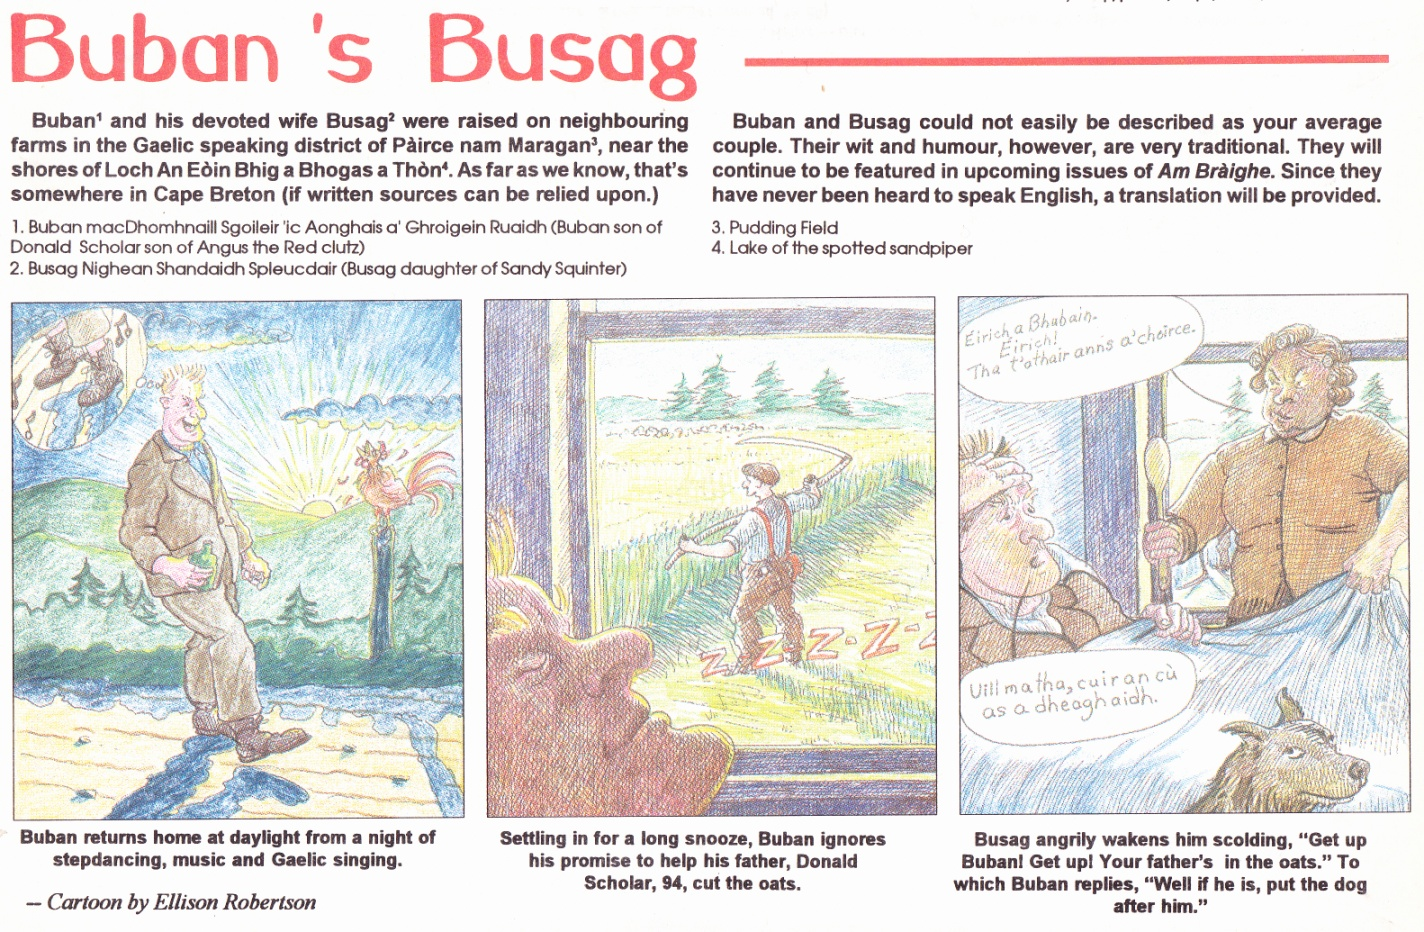 C:\Users\Robert\Documents\CARTOONING ILLUSTRATION ANIMATION\IMAGE CARTOON\IMAGE CARTOON B\BUBAN AND BUSAG, AmBraighe, Summer 1994, 28.jpg